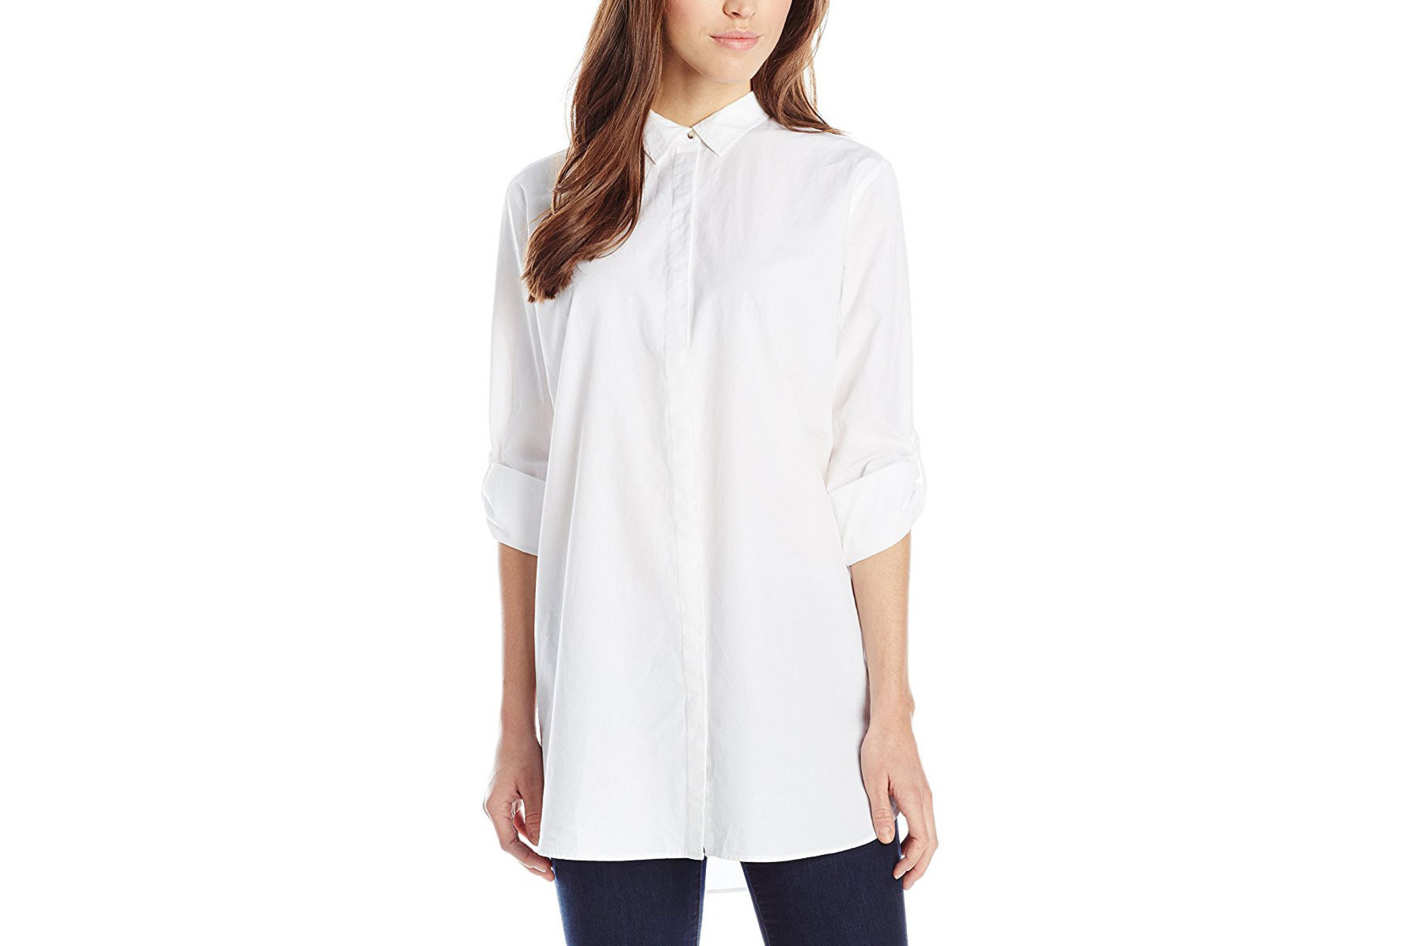 fd6b88497ccaf best white button down shirts for women. MiH Jeans Women's Oversize Button  Up Shirt. ""